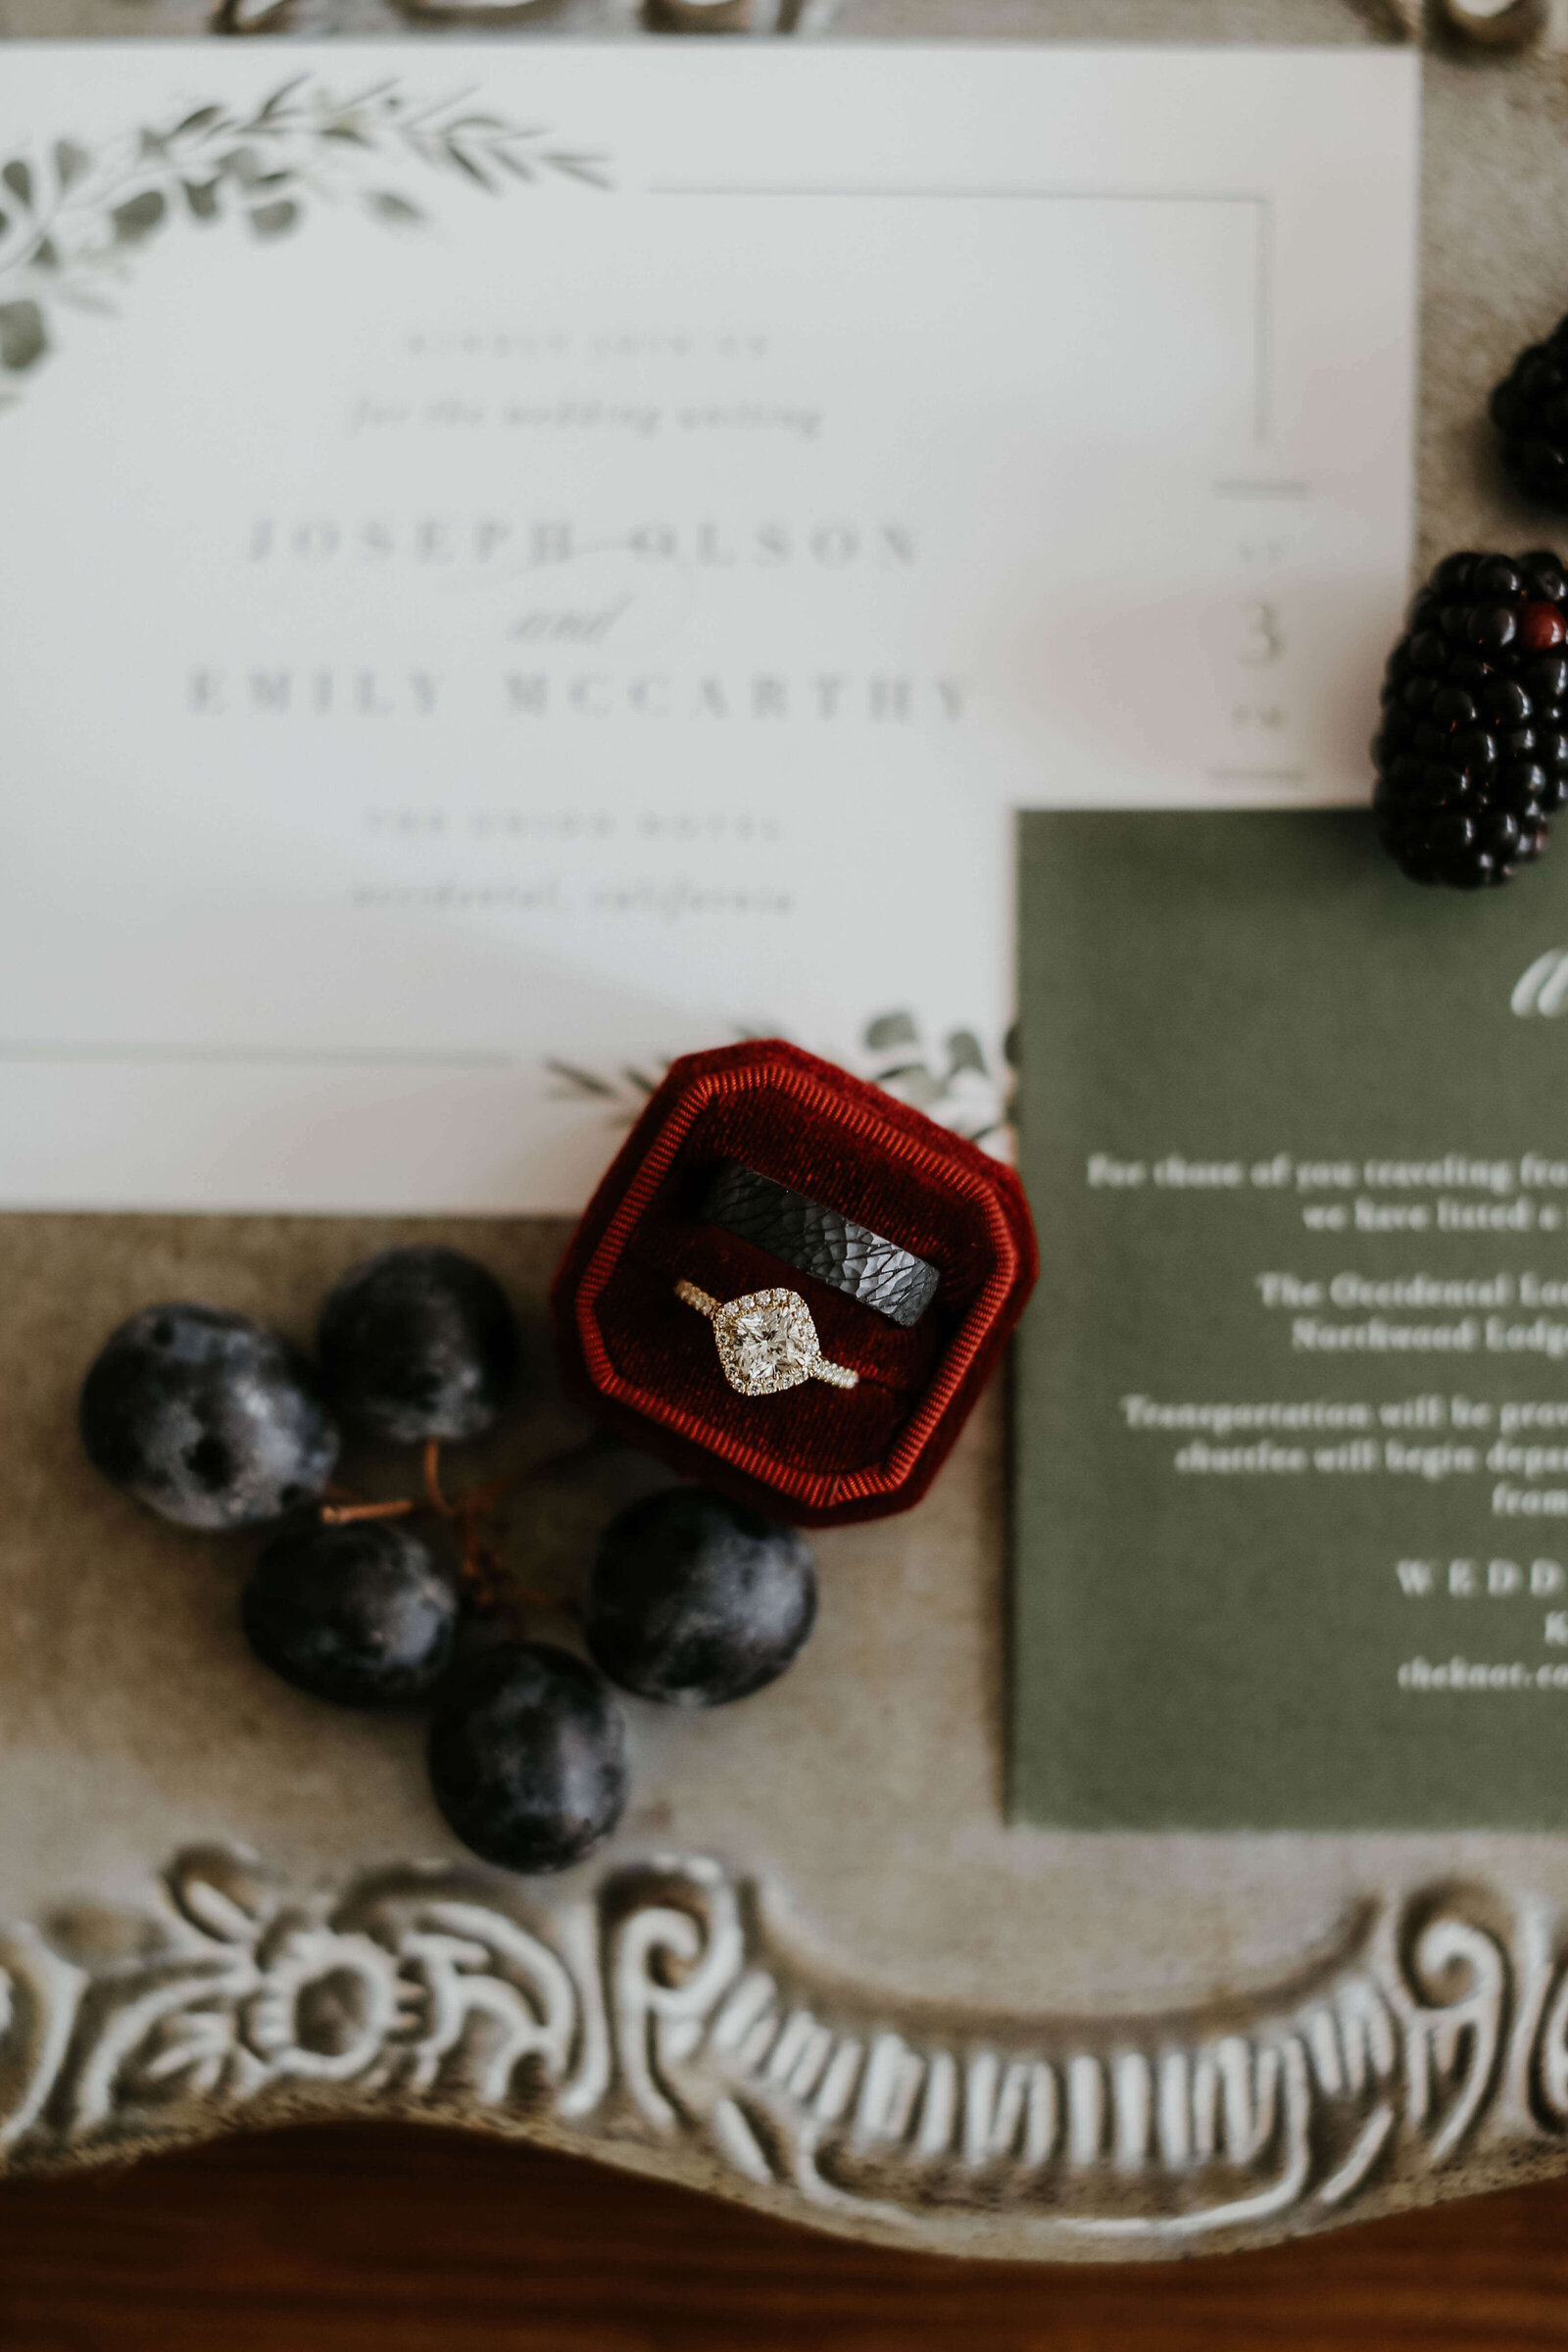 union-hotel-Occidental-california-wedding-sonoma-county-elopement-events-by-gianna-somona-wedding-planner-7